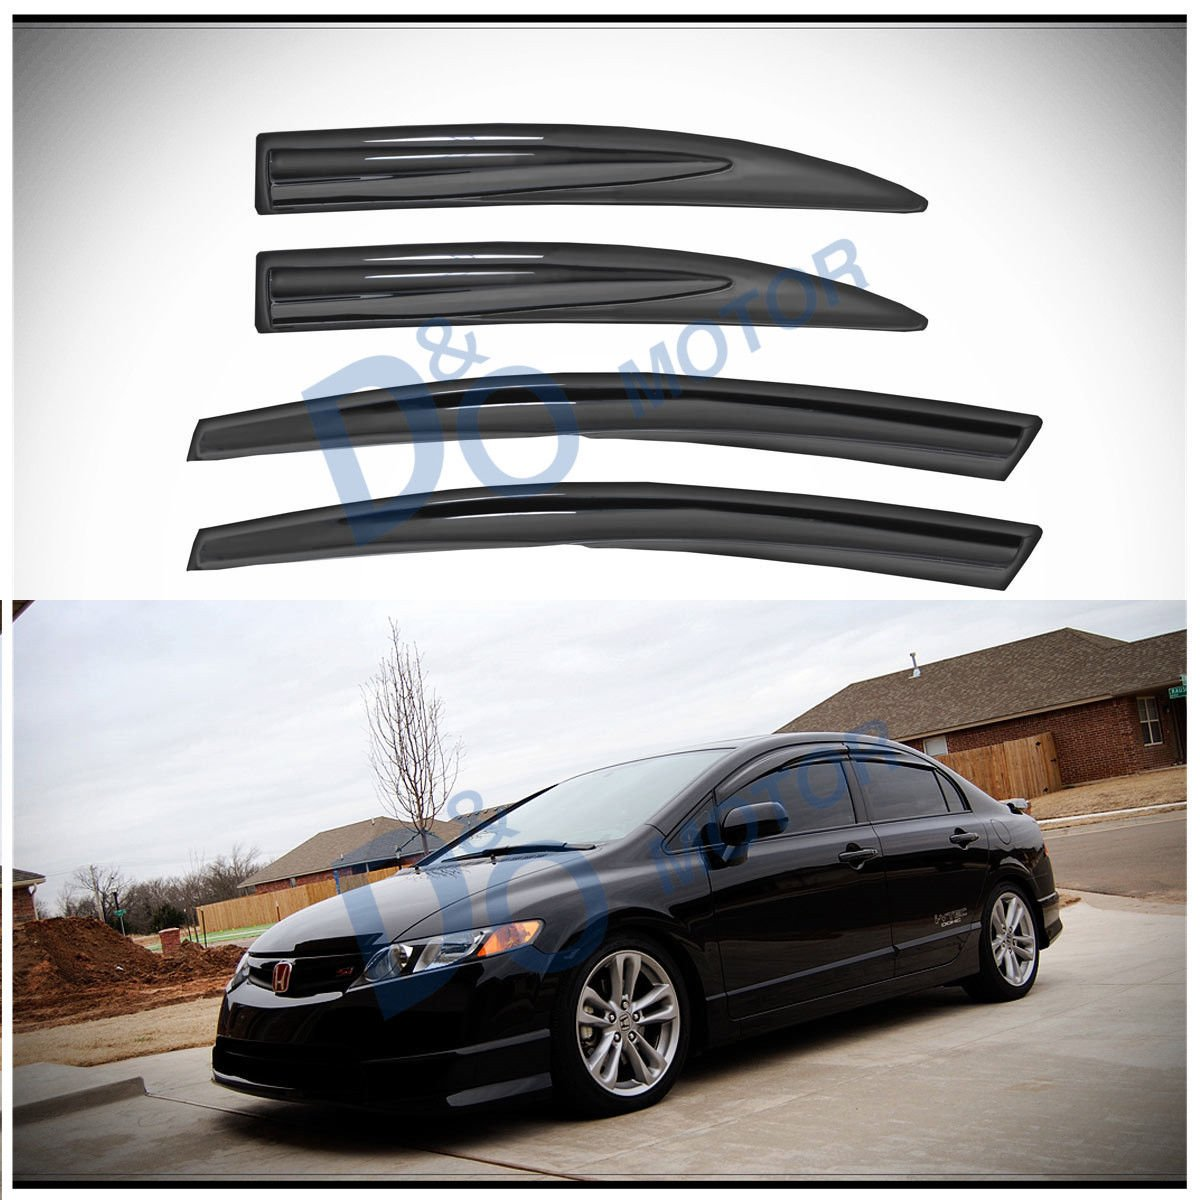 D&O MOTOR 4pcs JDM 3D Wavy MU Style Front+Rear Smoke Sun/Rain Guard Outside Mount Tape-On Vent Shade Window Visors For 06-11 Honda Civic 4-Door Sedan